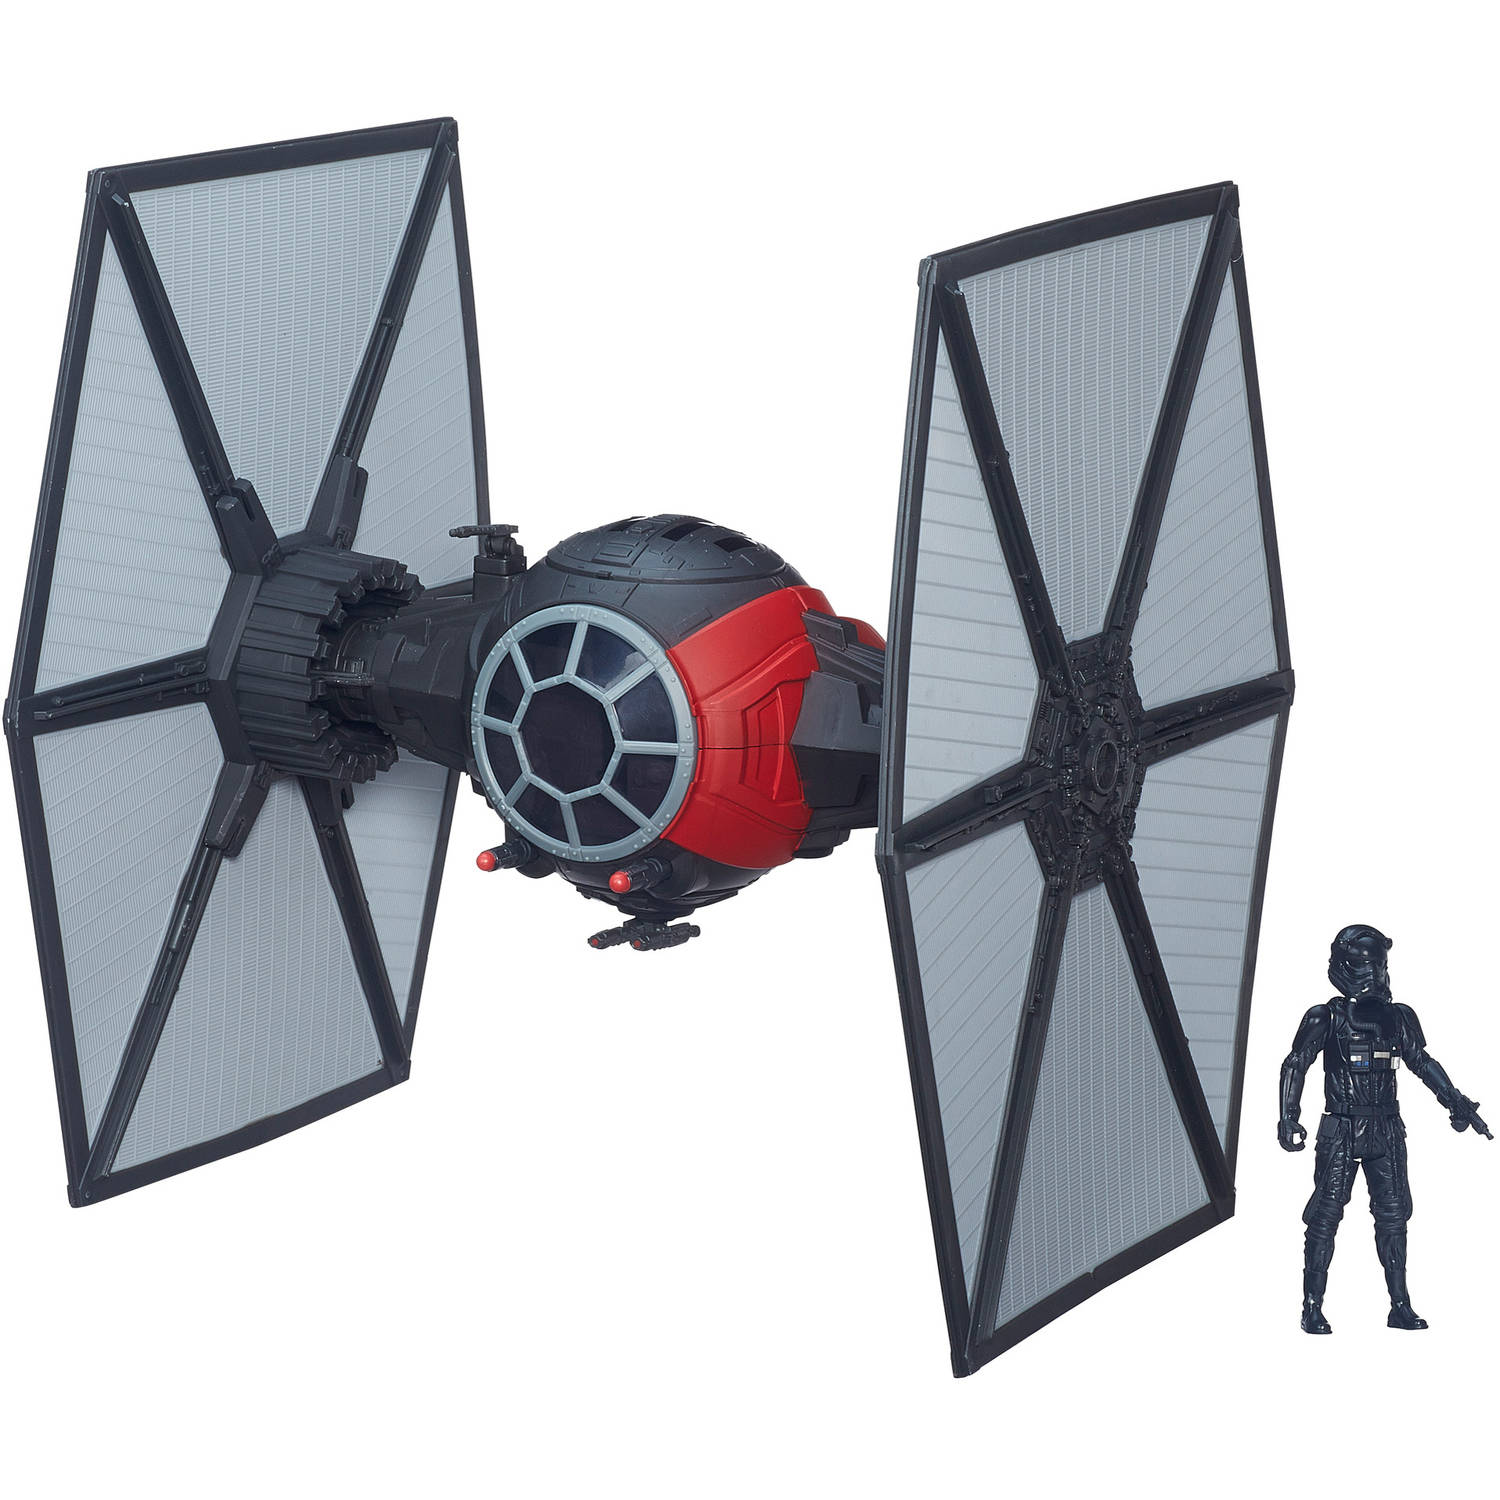 "Star Wars The Force Awakens 3.75"" Vehicle First Order Special Forces TIE Fighter"